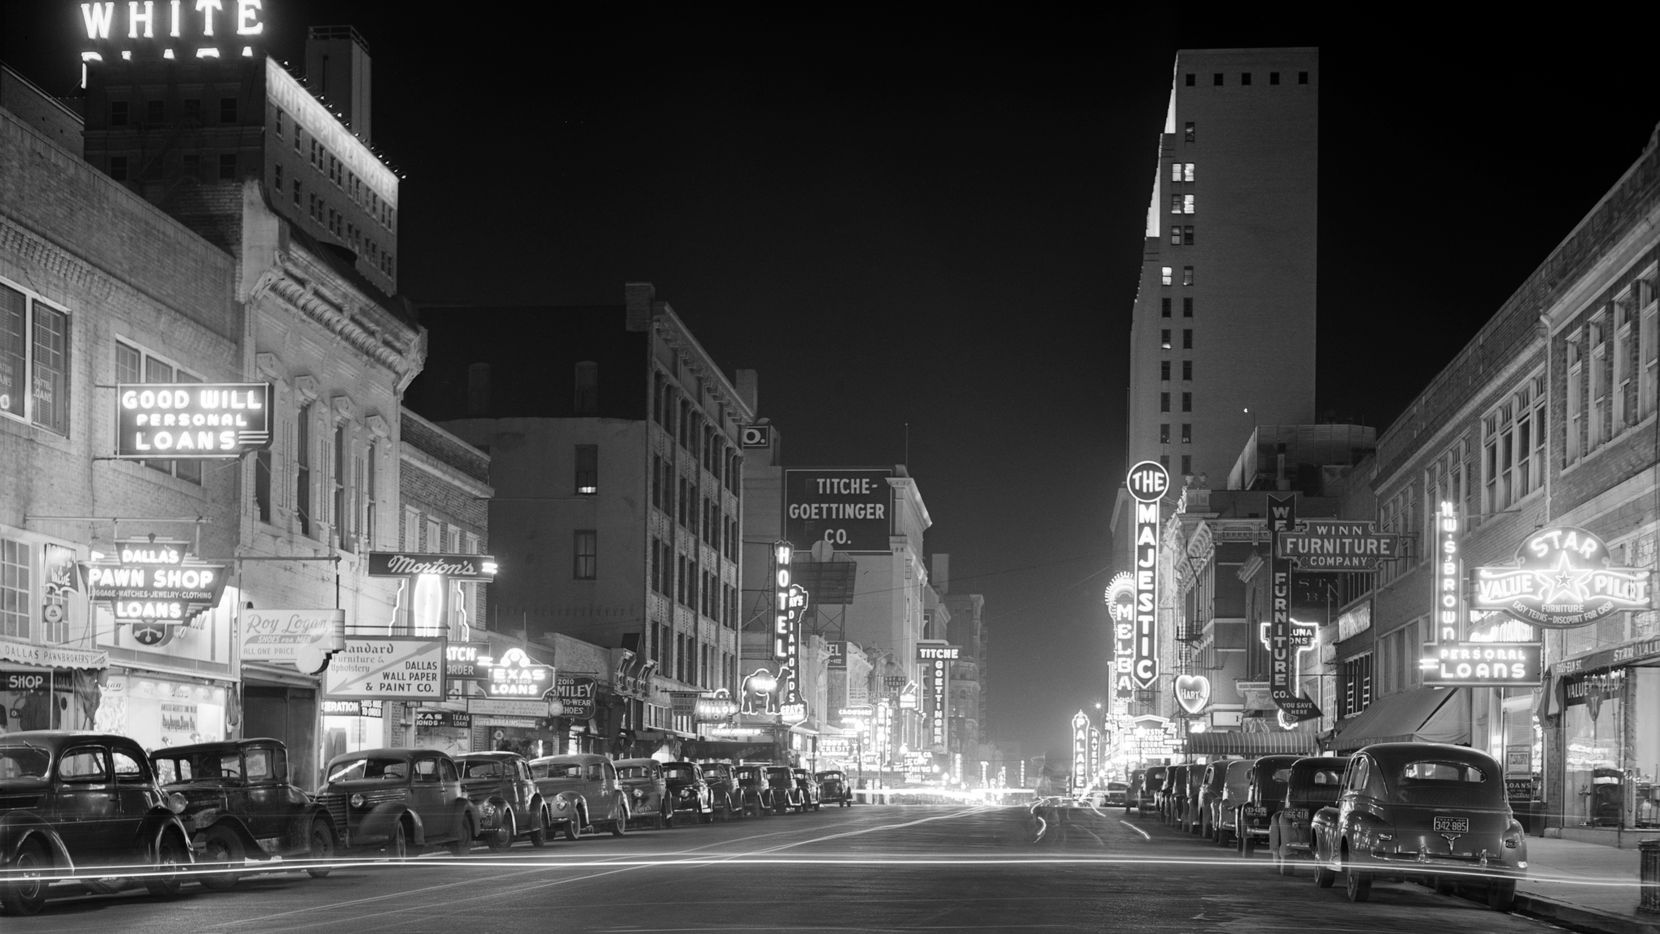 In the early 20th century, Elm Street was downtown Dallas' entertainment hub with theaters, restaurants and bars.